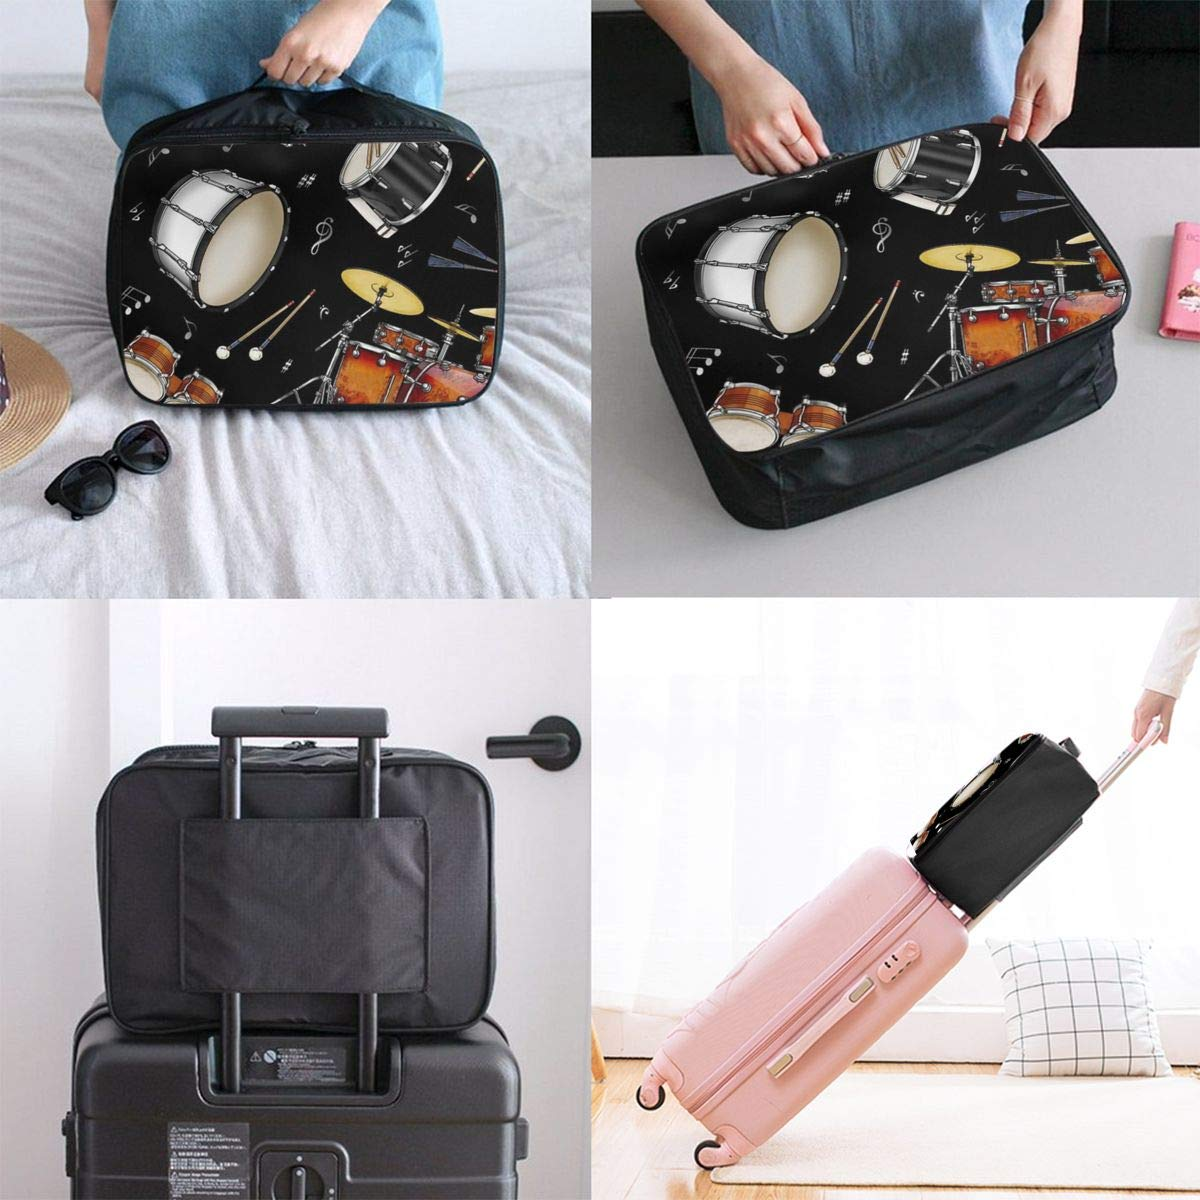 Rock Drum Stand Travel Duffel Bag Casual Large Capacity Portable Luggage Bag Suitcase Storage Bag Luggage Packing Tote Bag Weekend Trip